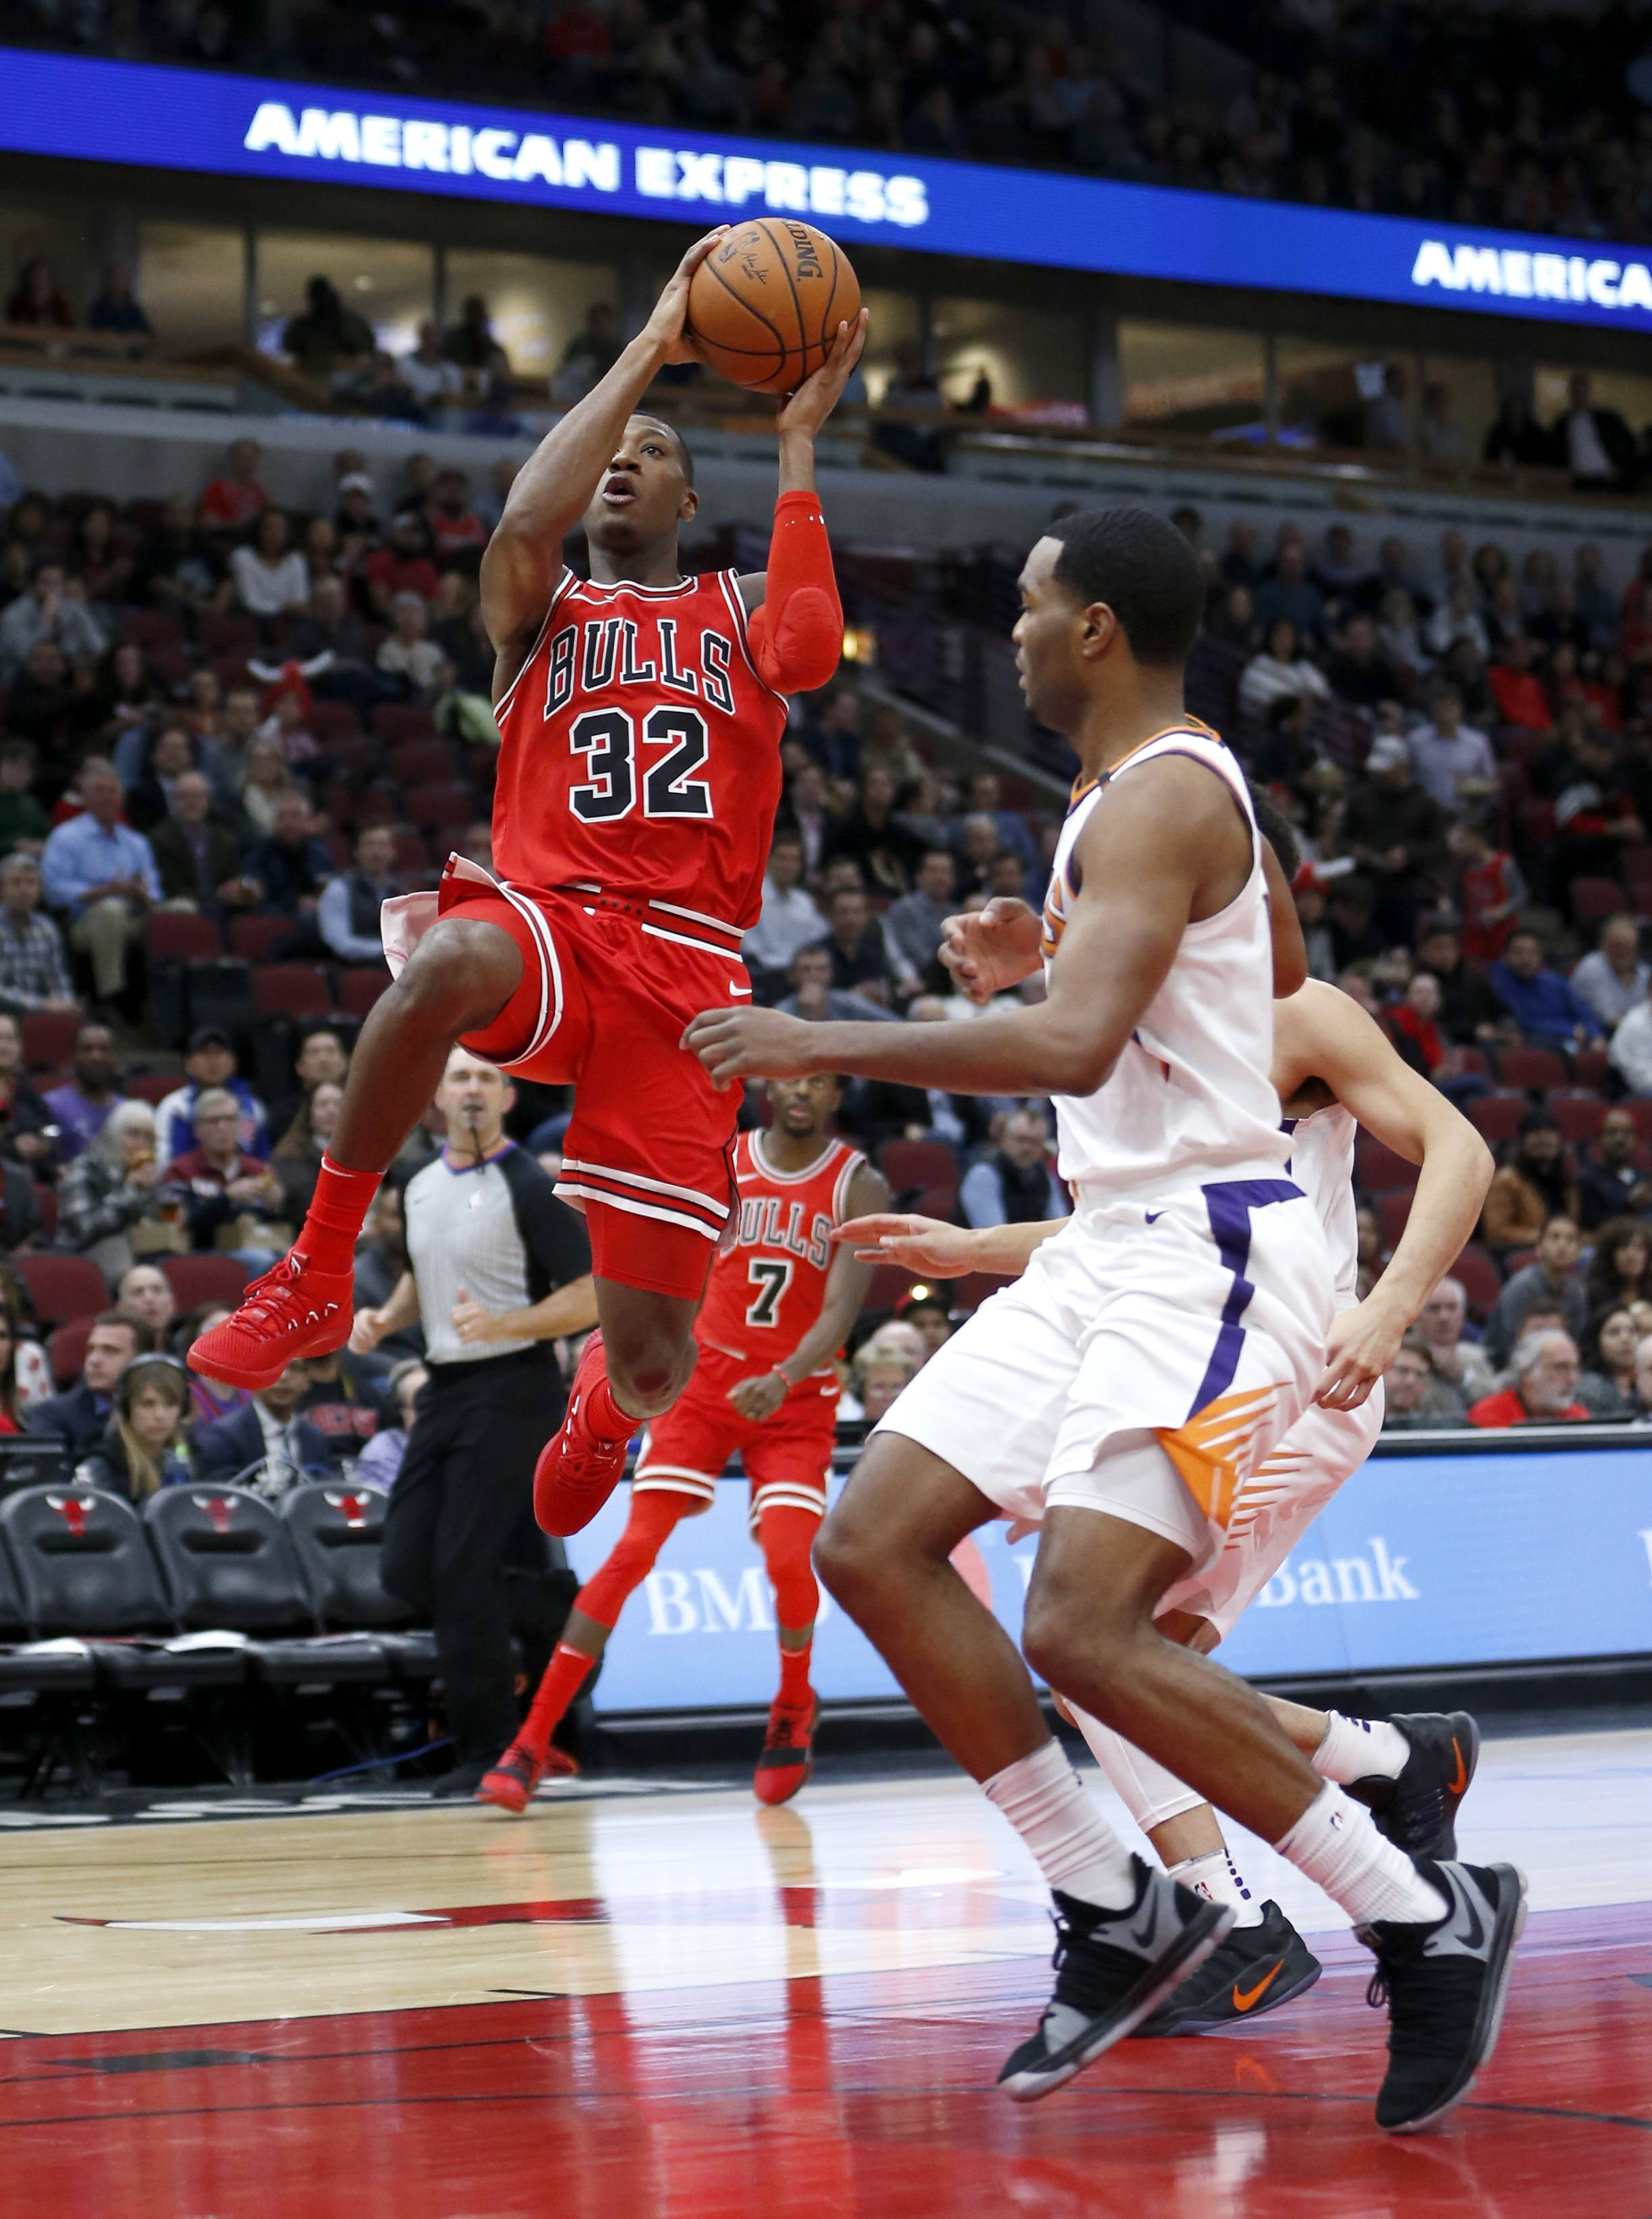 Chicago Bulls' Kris Dunn drives past Phoenix Suns' TJ Warren during the first half of an NBA basketball game Tuesday, Nov. 28, 2017, in Chicago. (AP Photo/Charles Rex Arbogast)